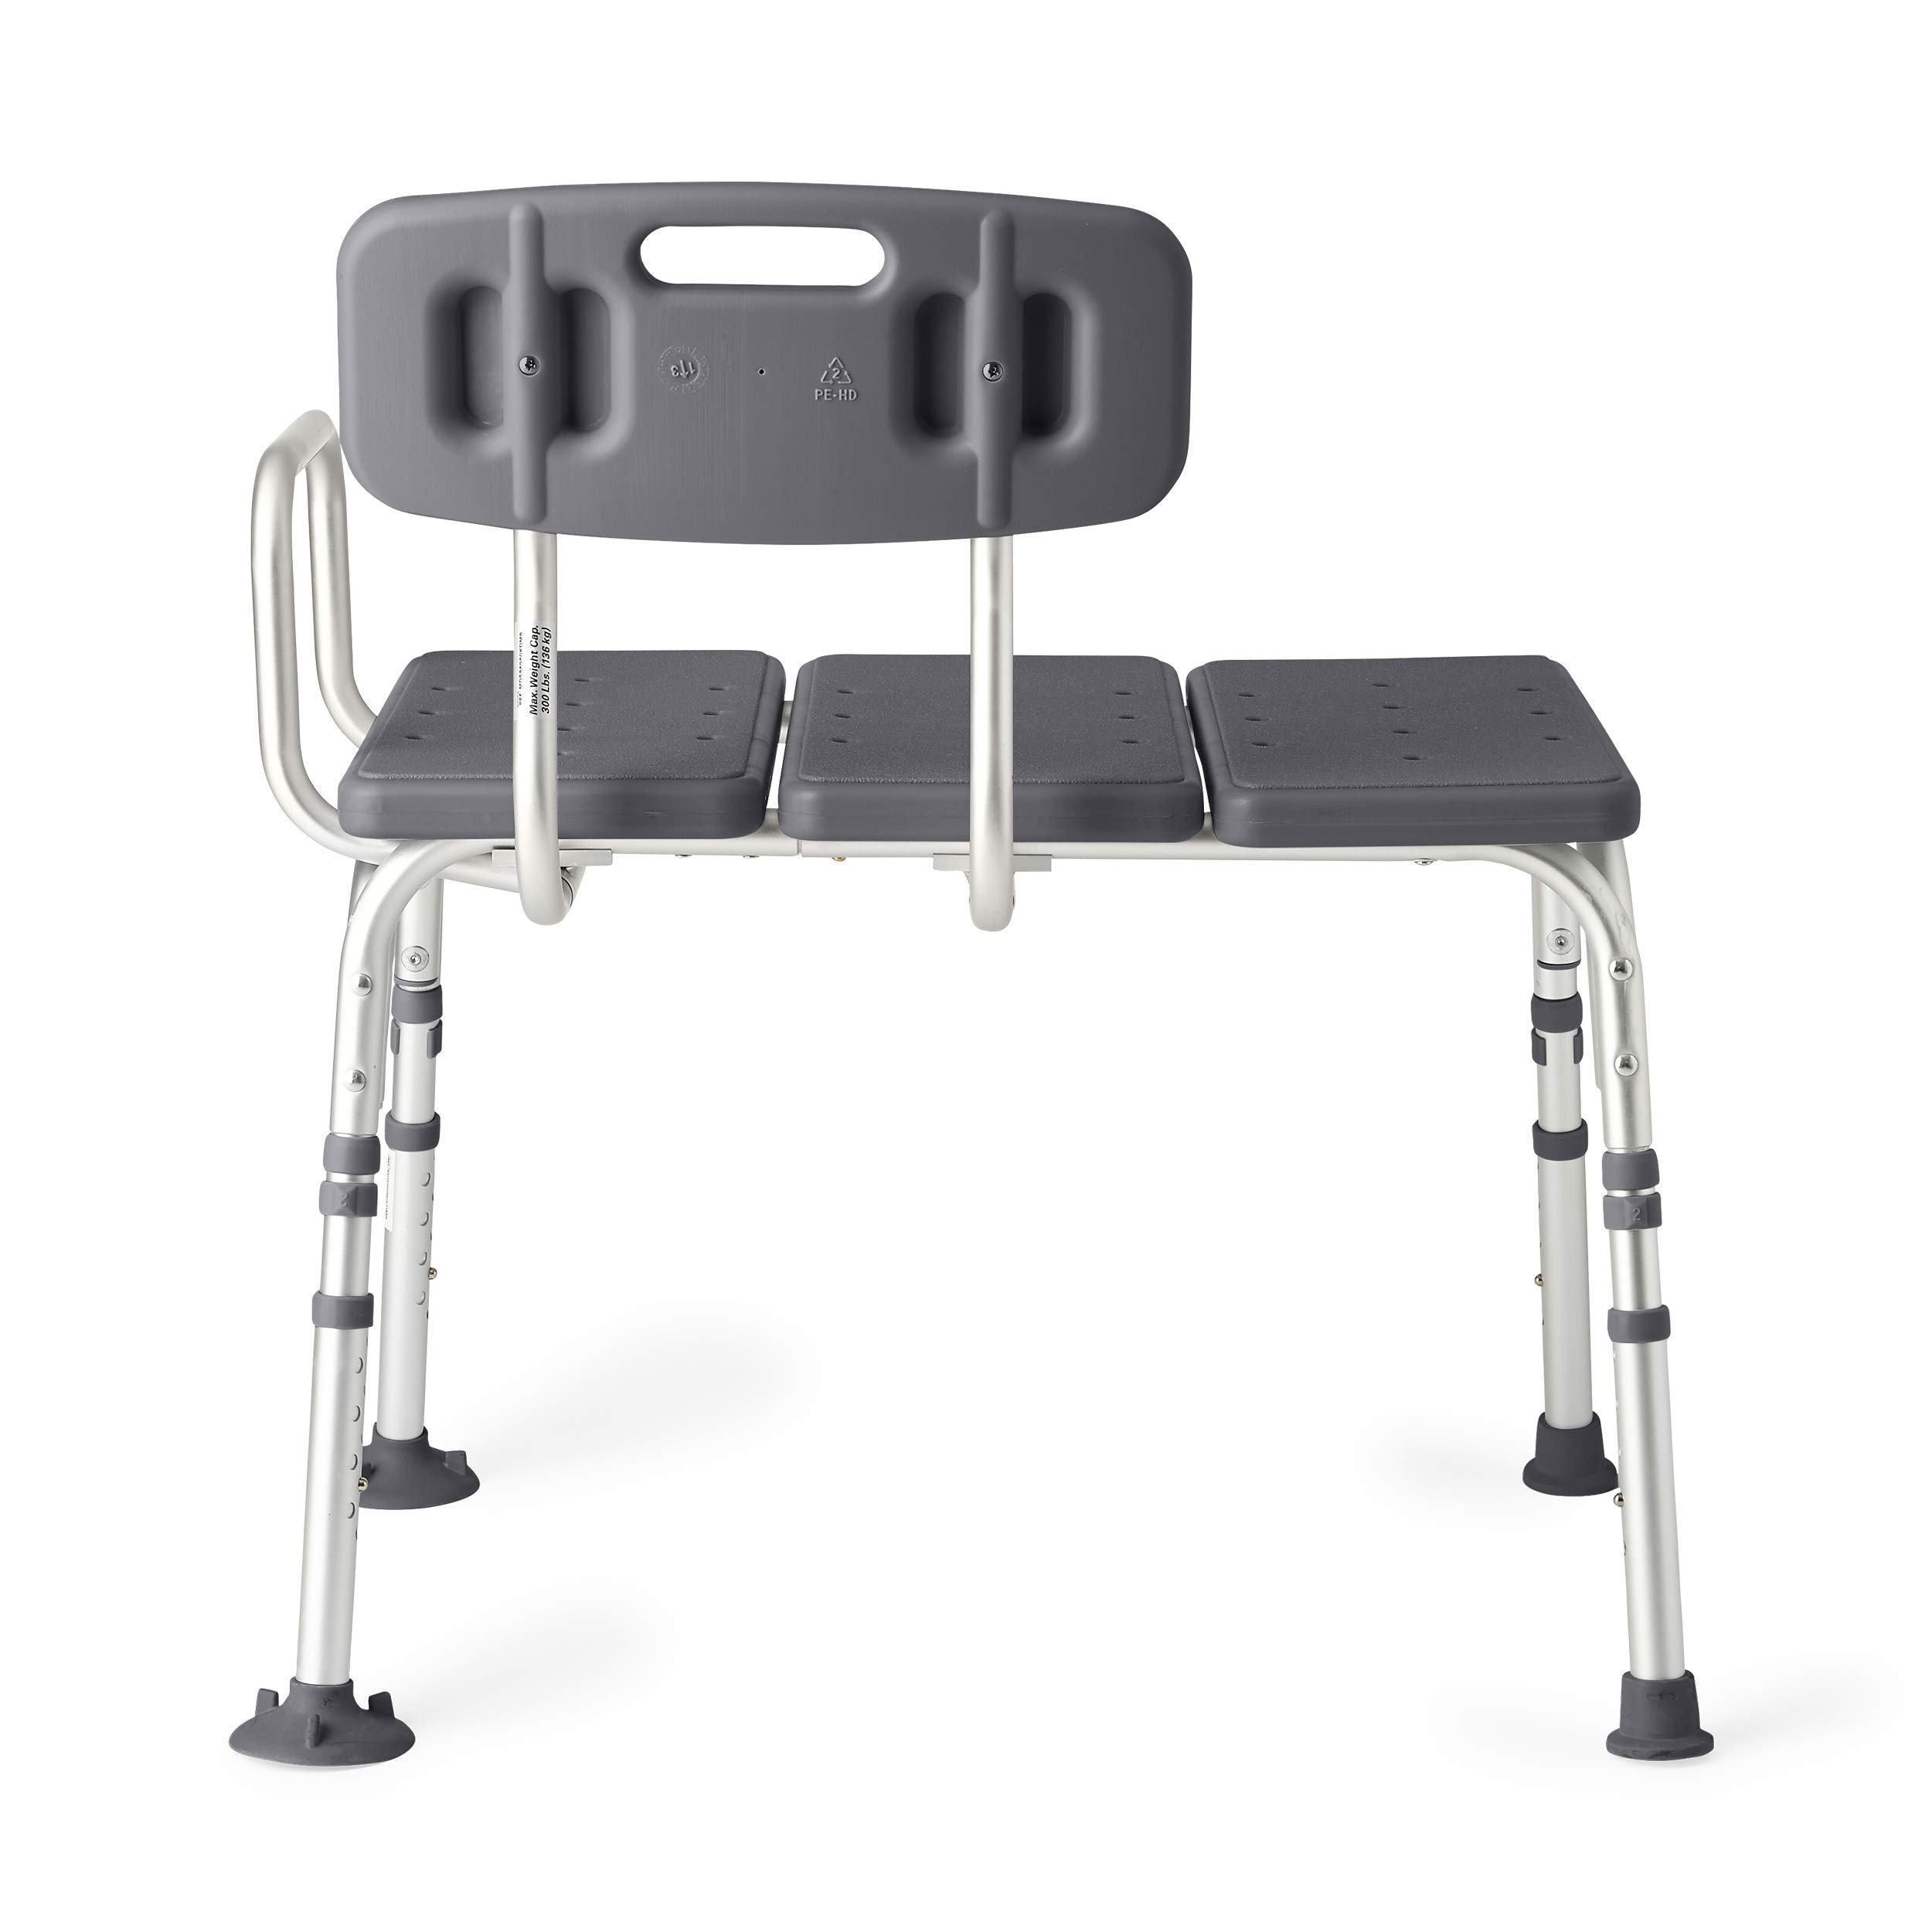 Medline Knockdown Transfer Bath Bench with Back, Microban Antimicrobial Protection, 350lb Weight Capacity, Grey by Medline (Image #3)